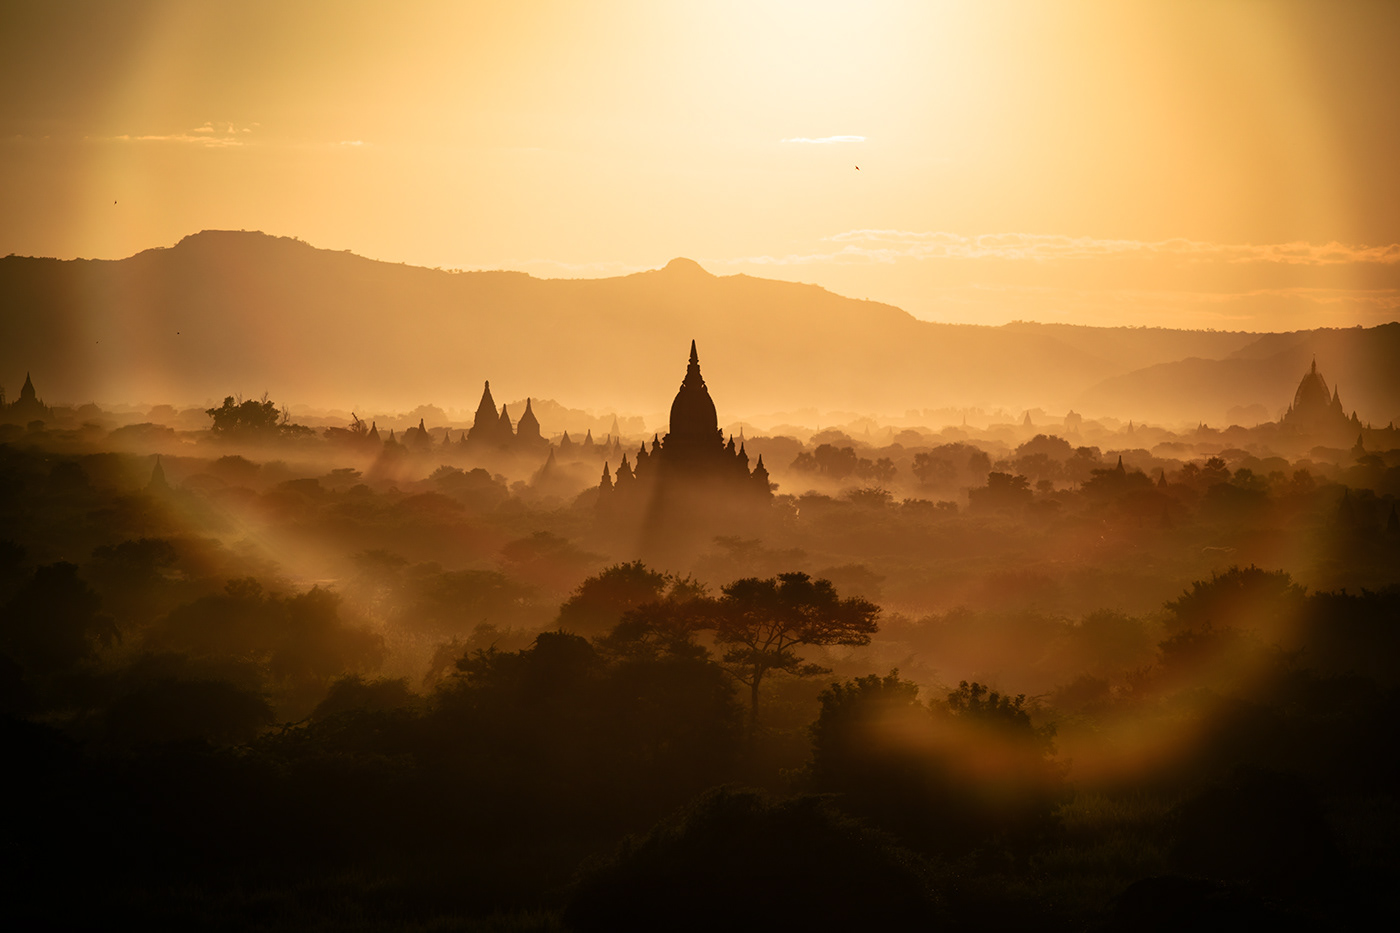 myanmar-from-above-03.jpg